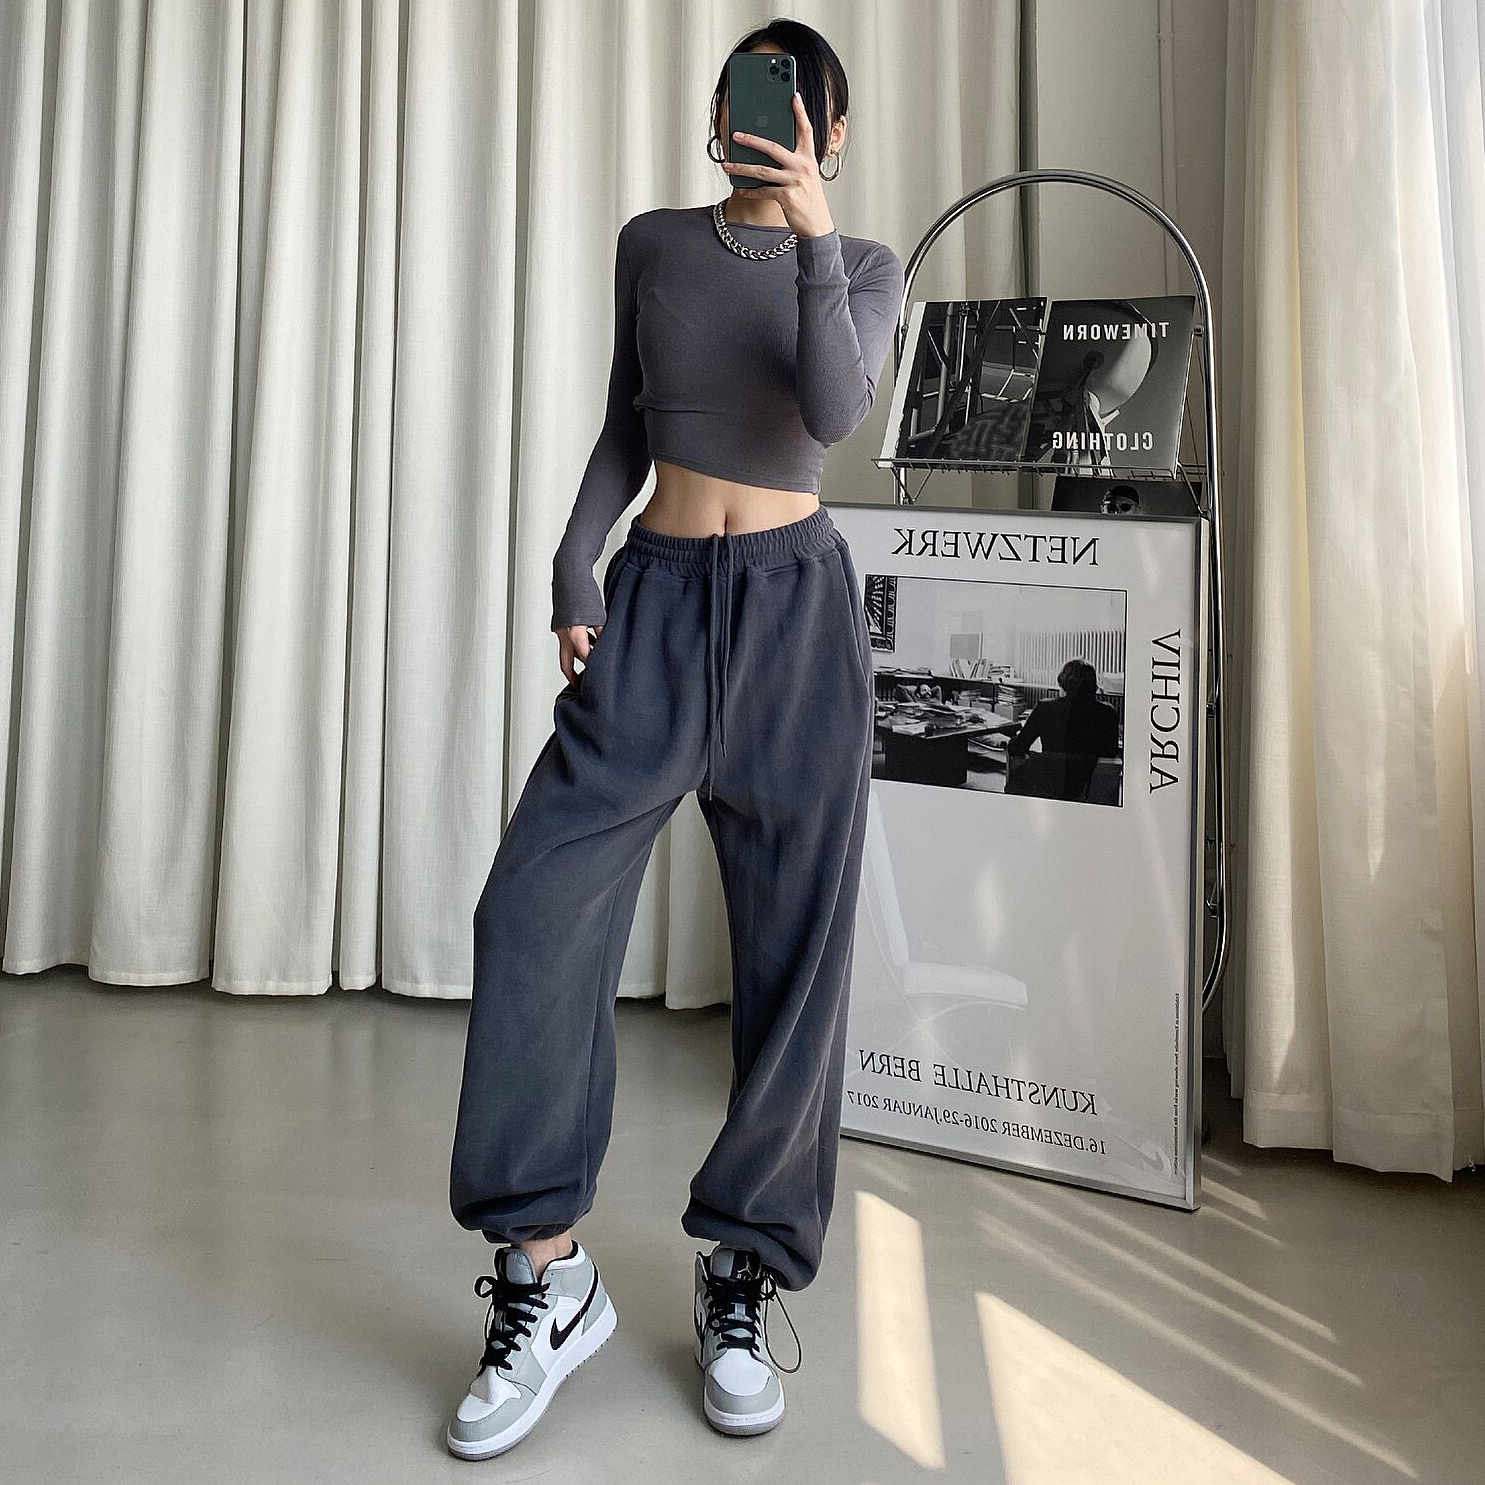 DQSTORE Europe and the United States new high-waisted draw rope loose show thin leggings plus velvet sports casual thick cotton pants Harlan pants girl